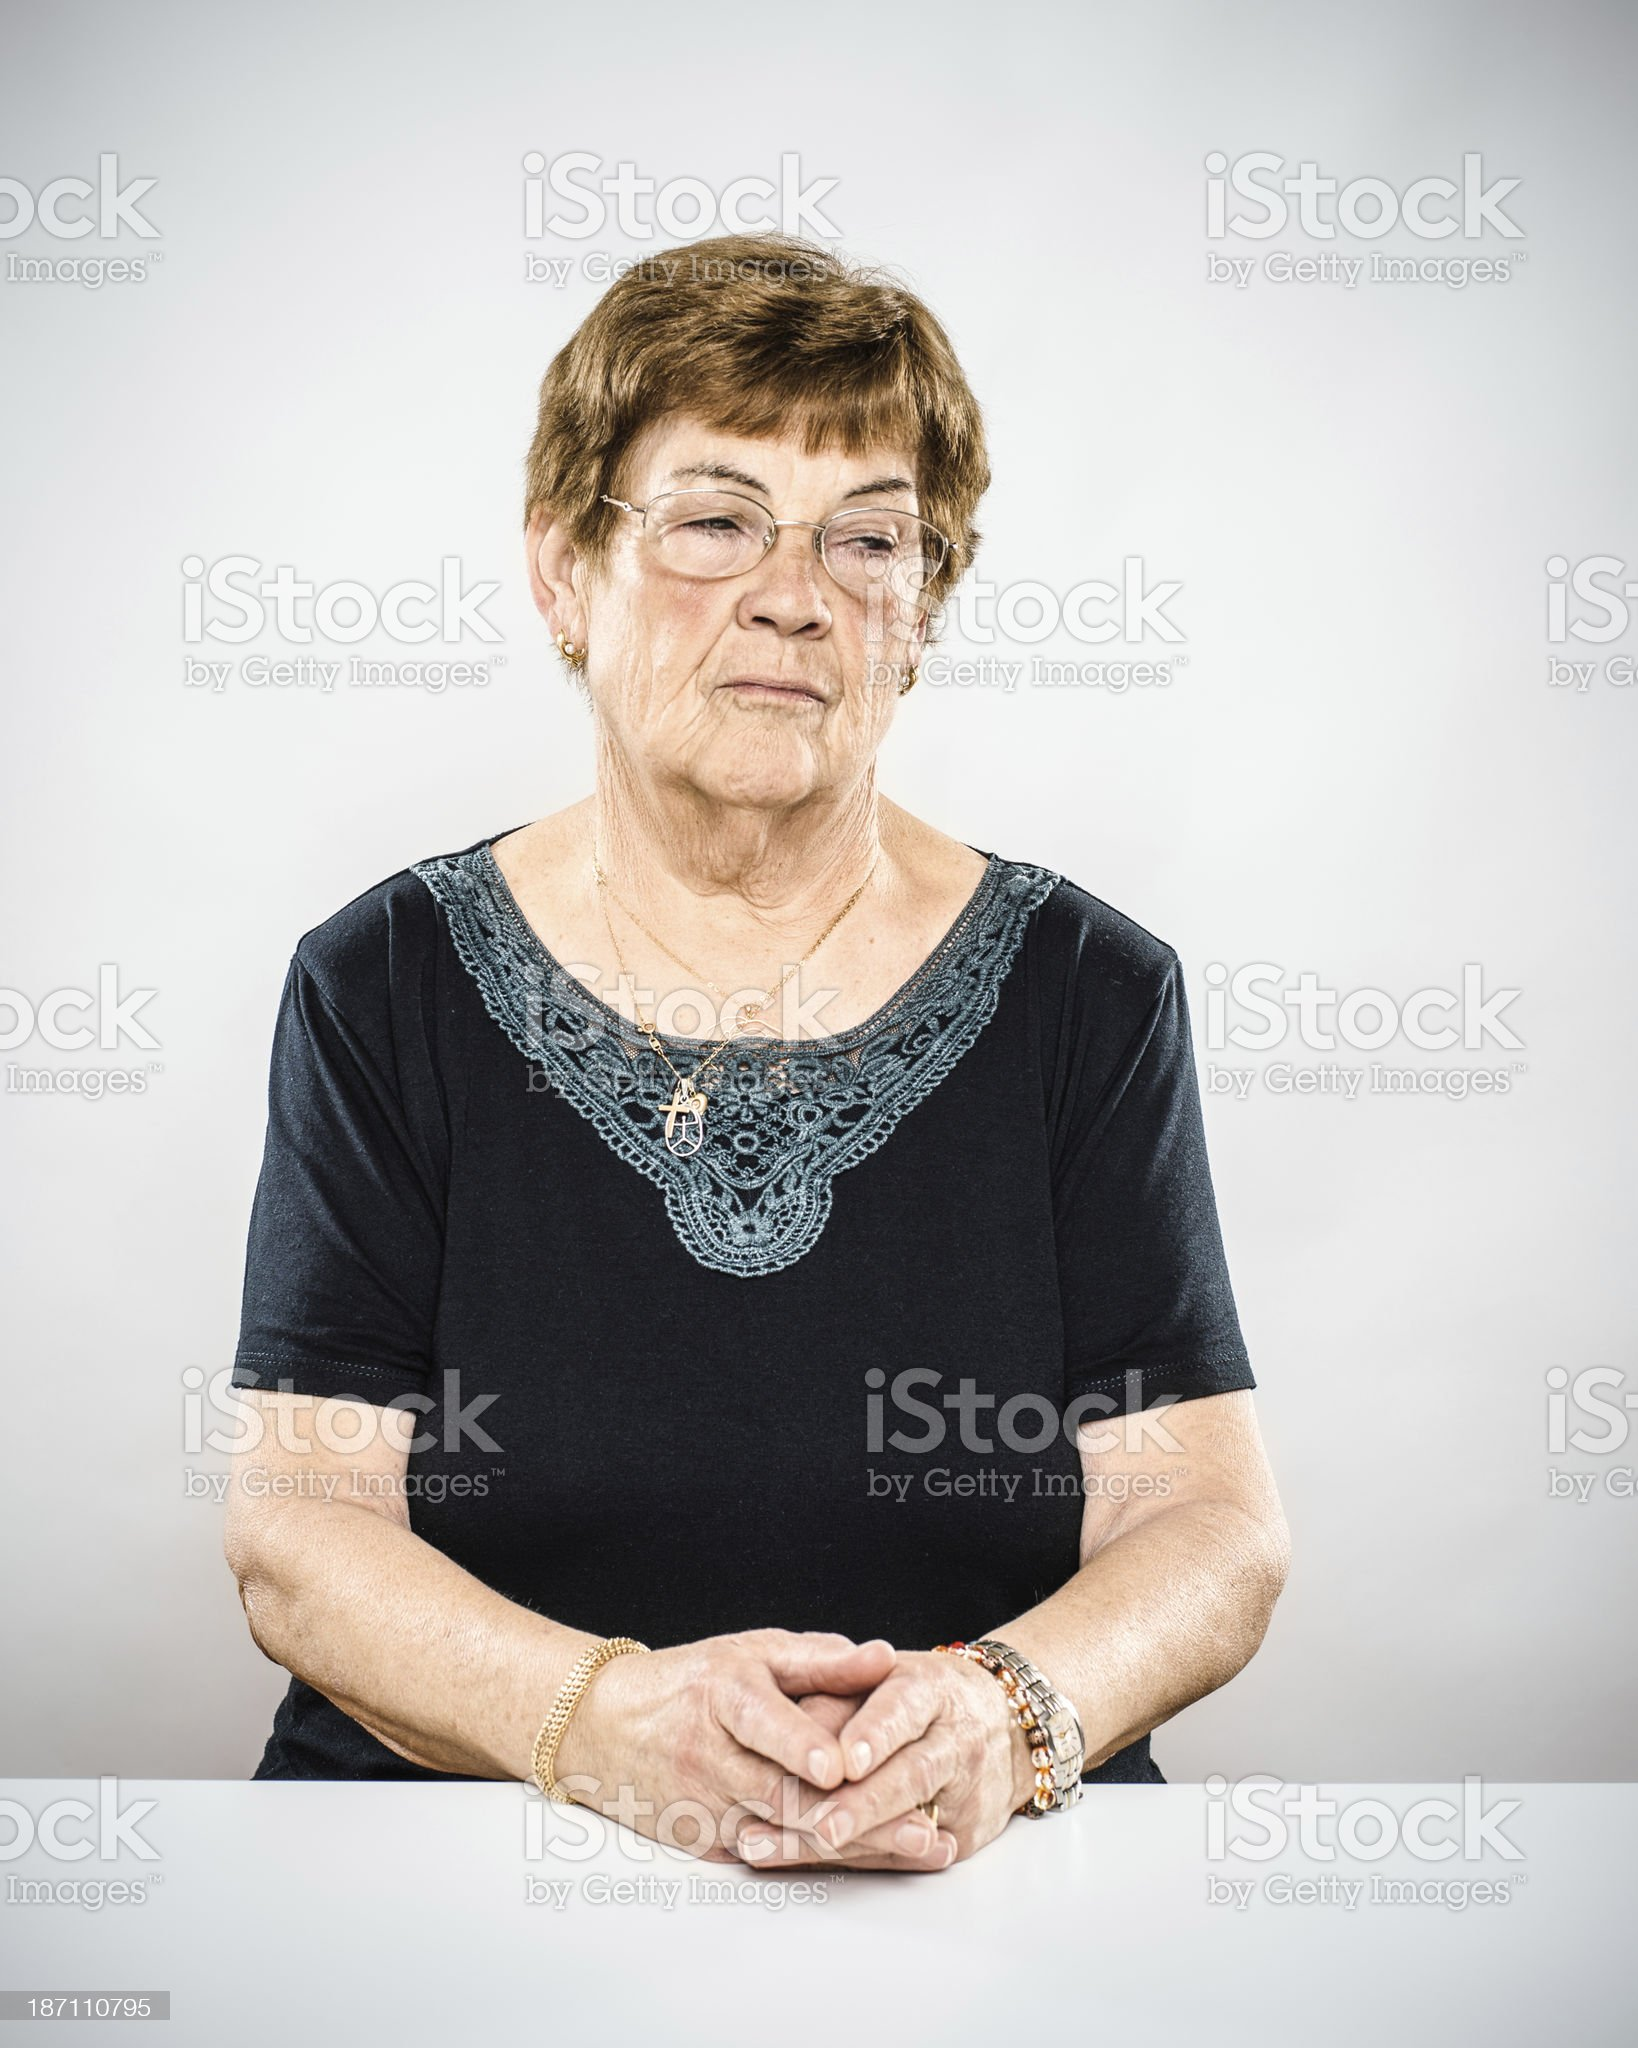 Envy royalty-free stock photo